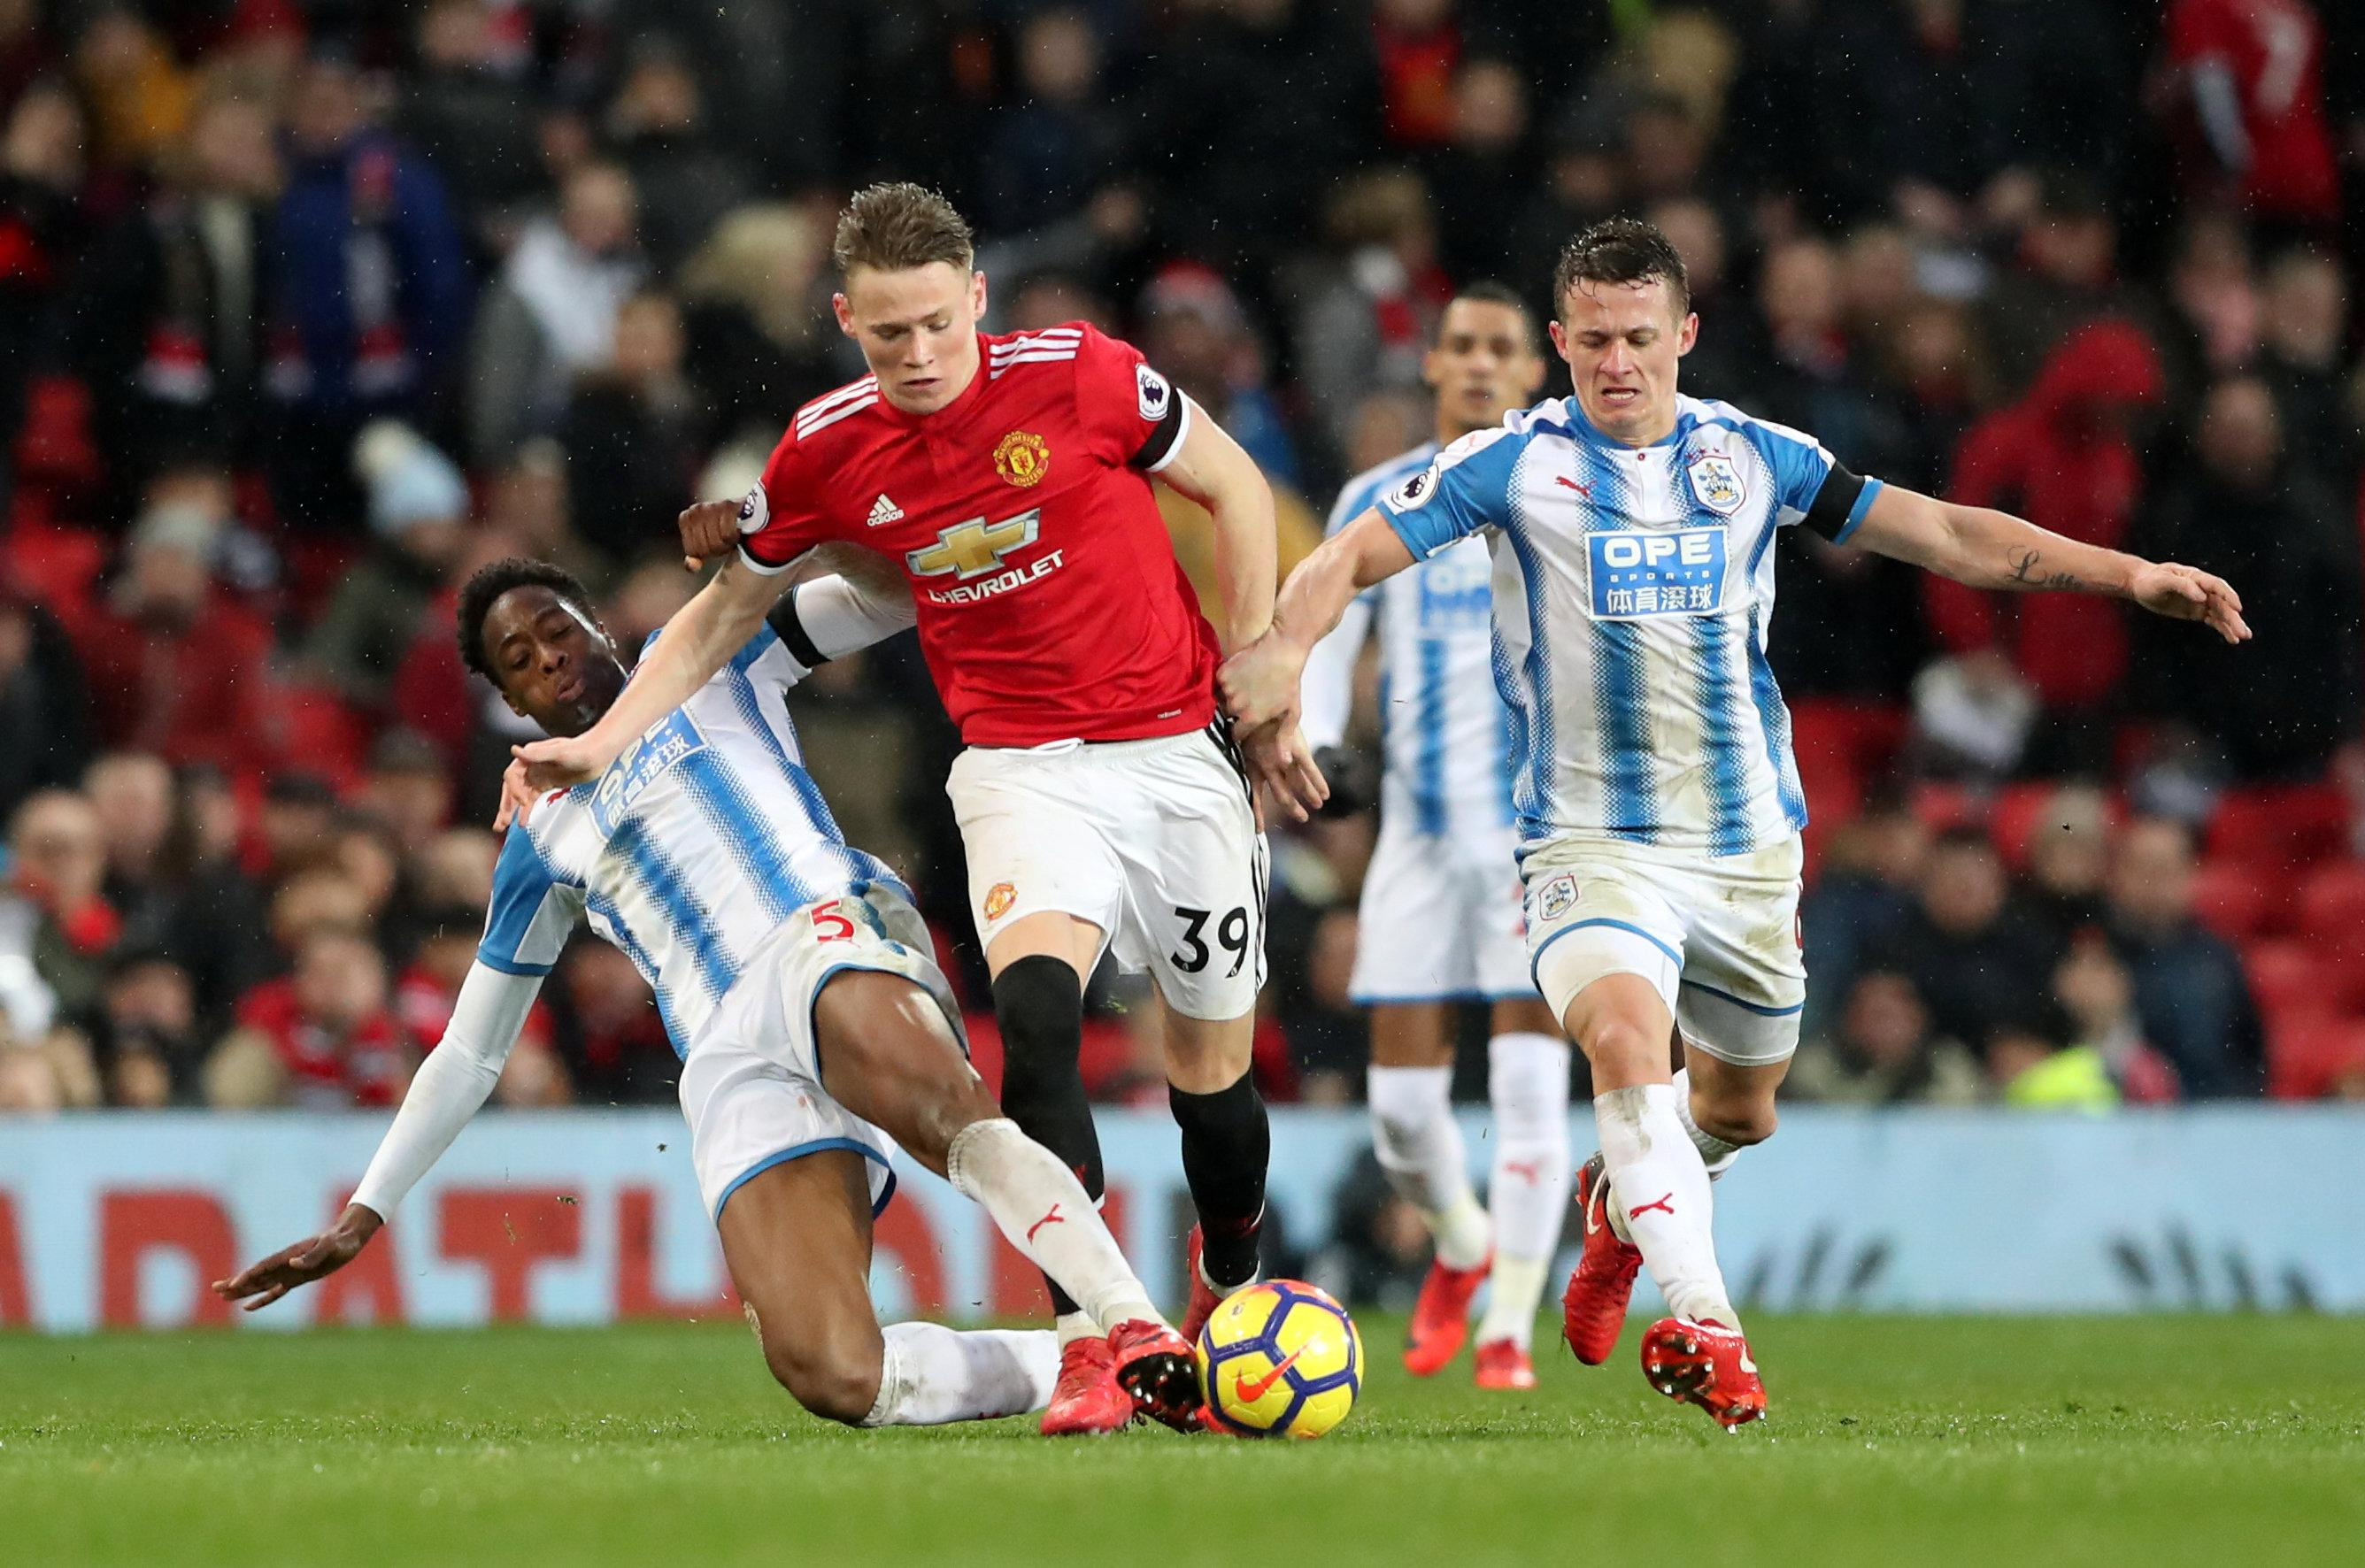 McTominay has become a first-team regular at United this season